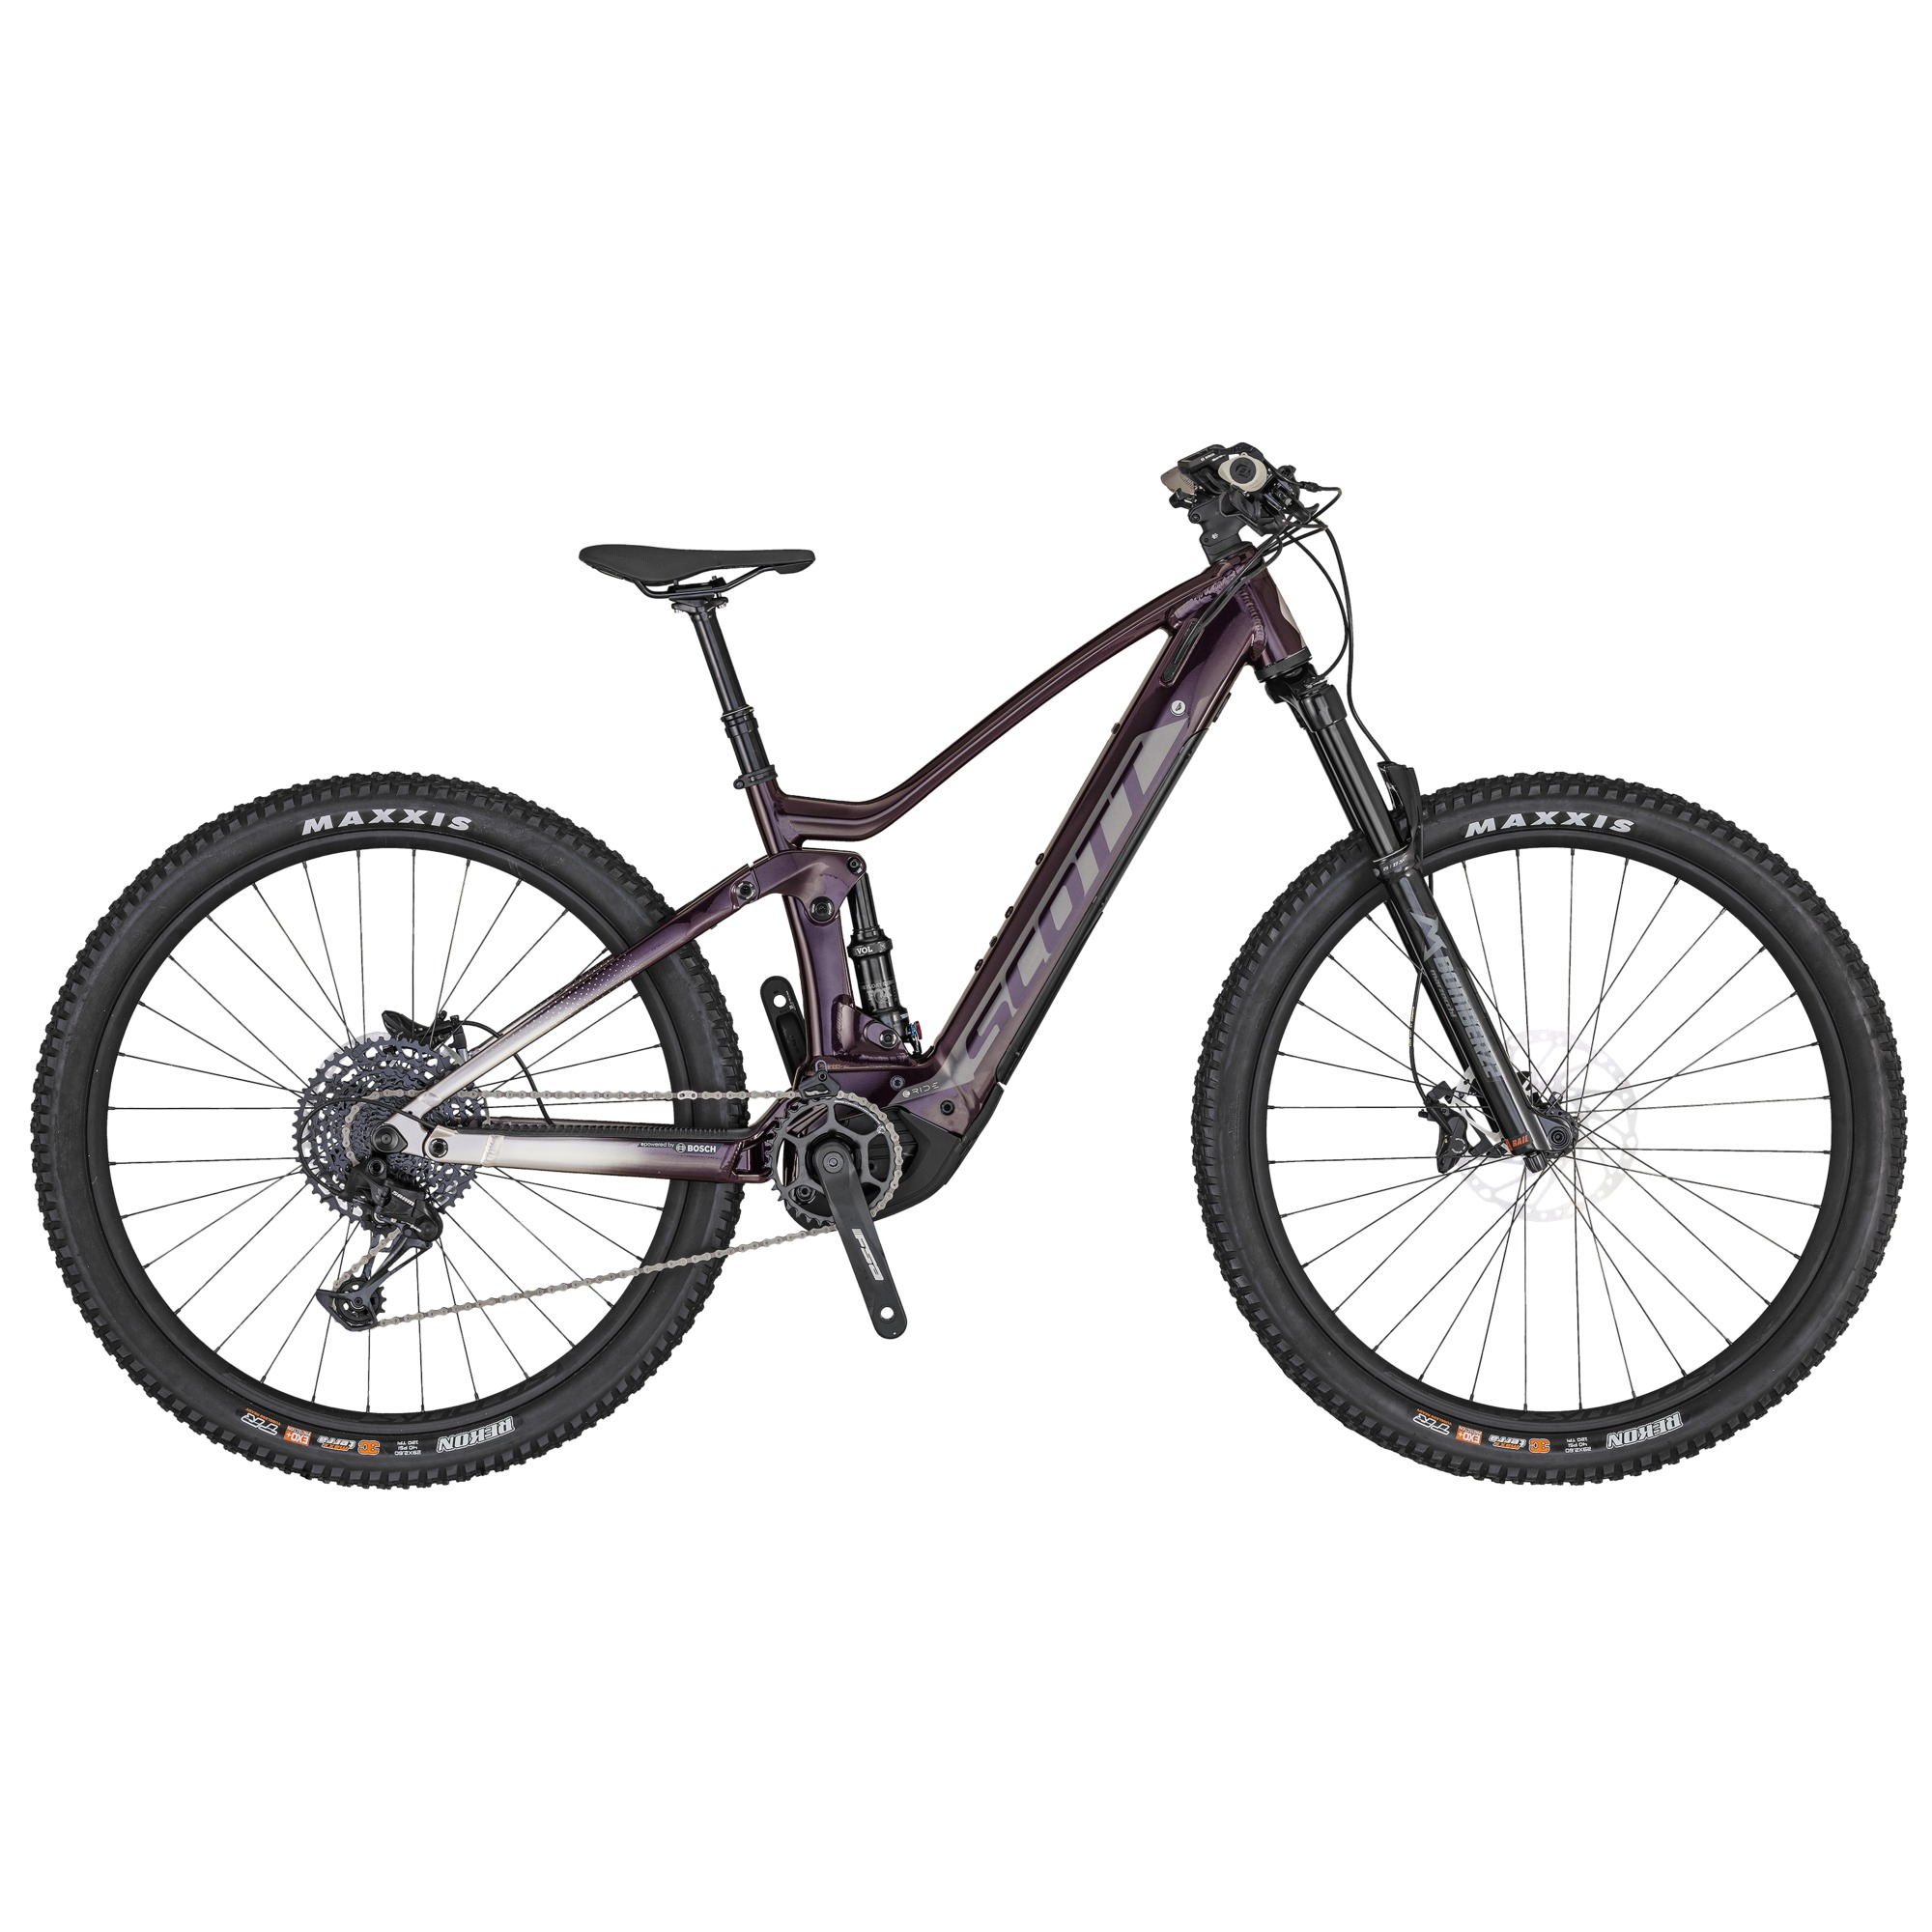 scott-contessa-strike-eride-910-bike-006